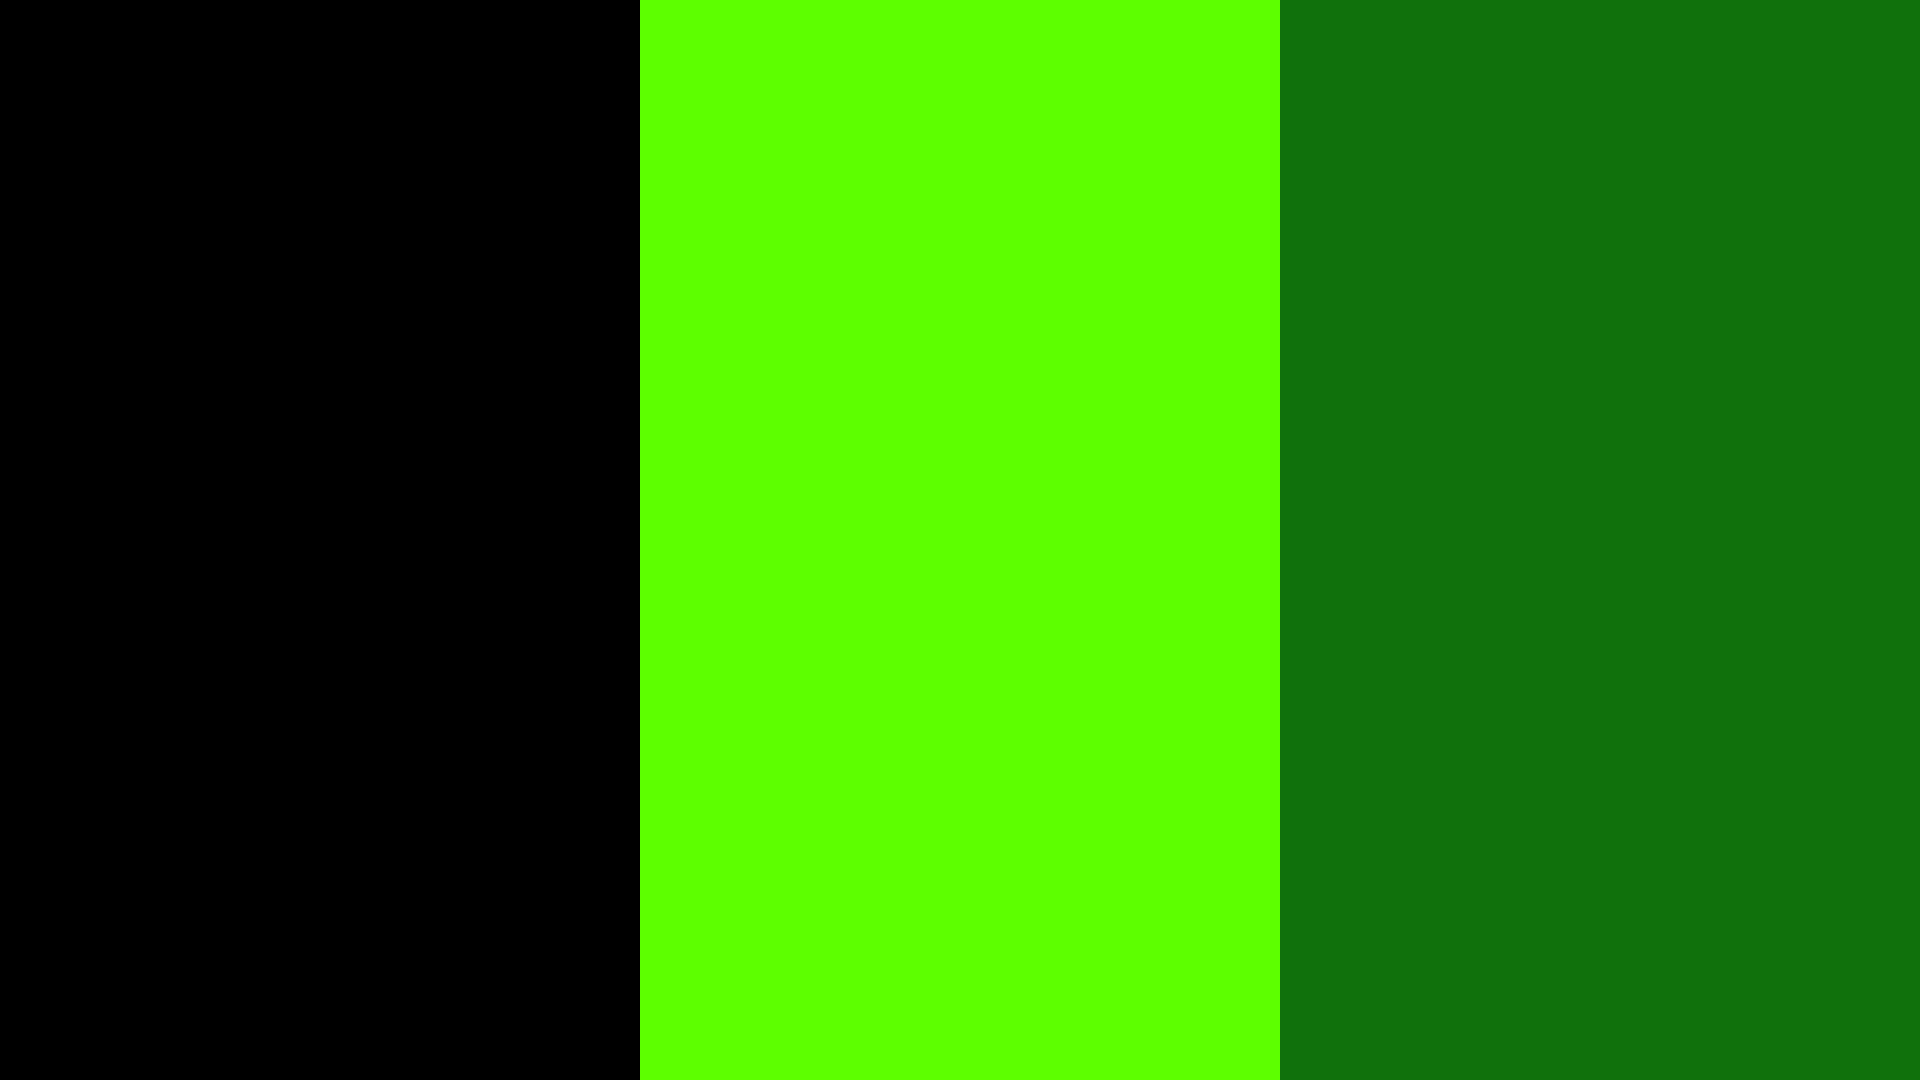 LCD Green Color Palette